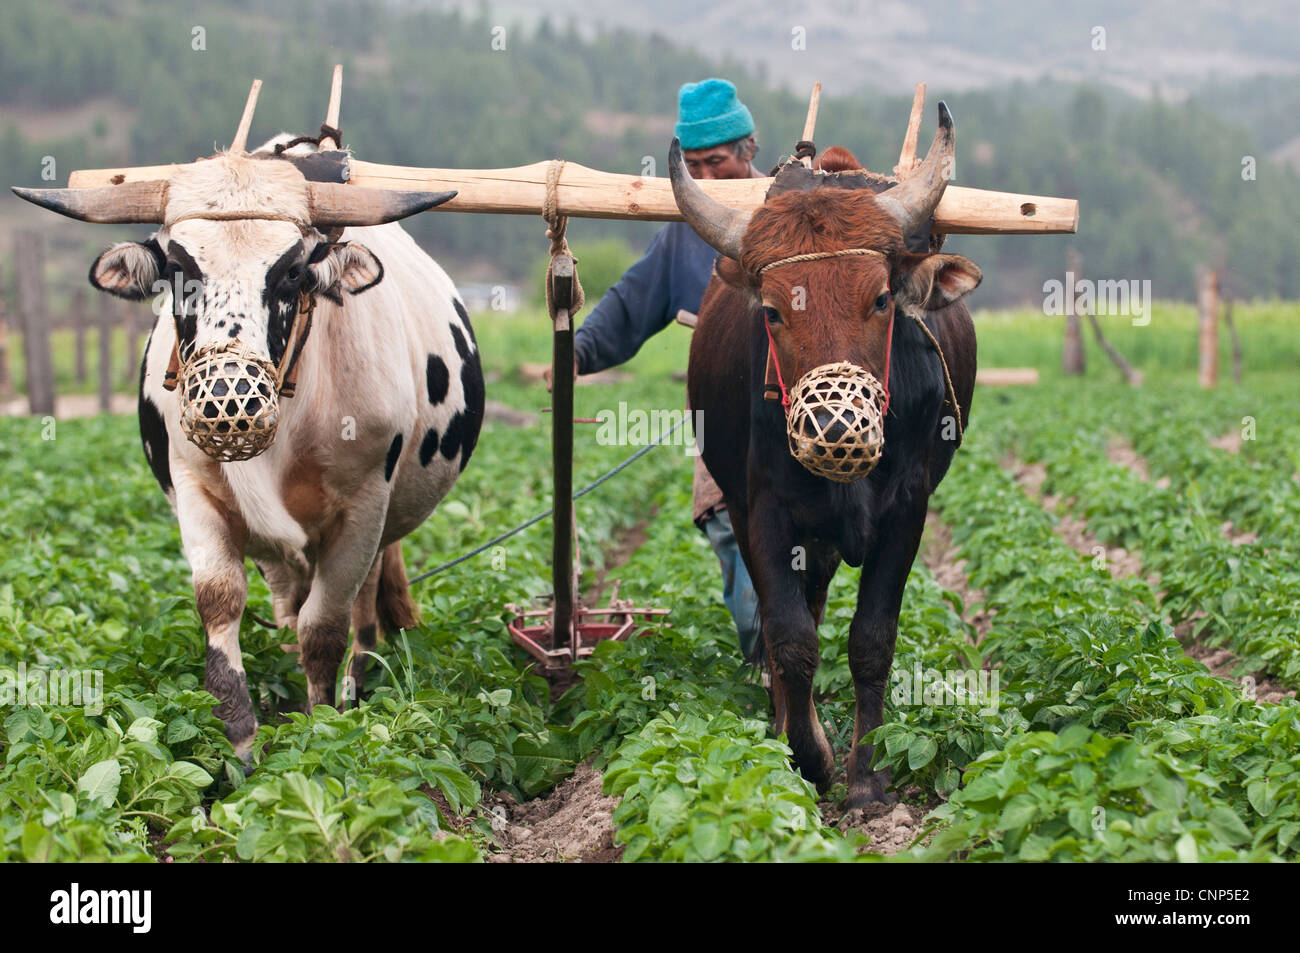 Asia, Bhutan, Bumthang. Farmer plowing fields with a pair of oxen - Stock Image